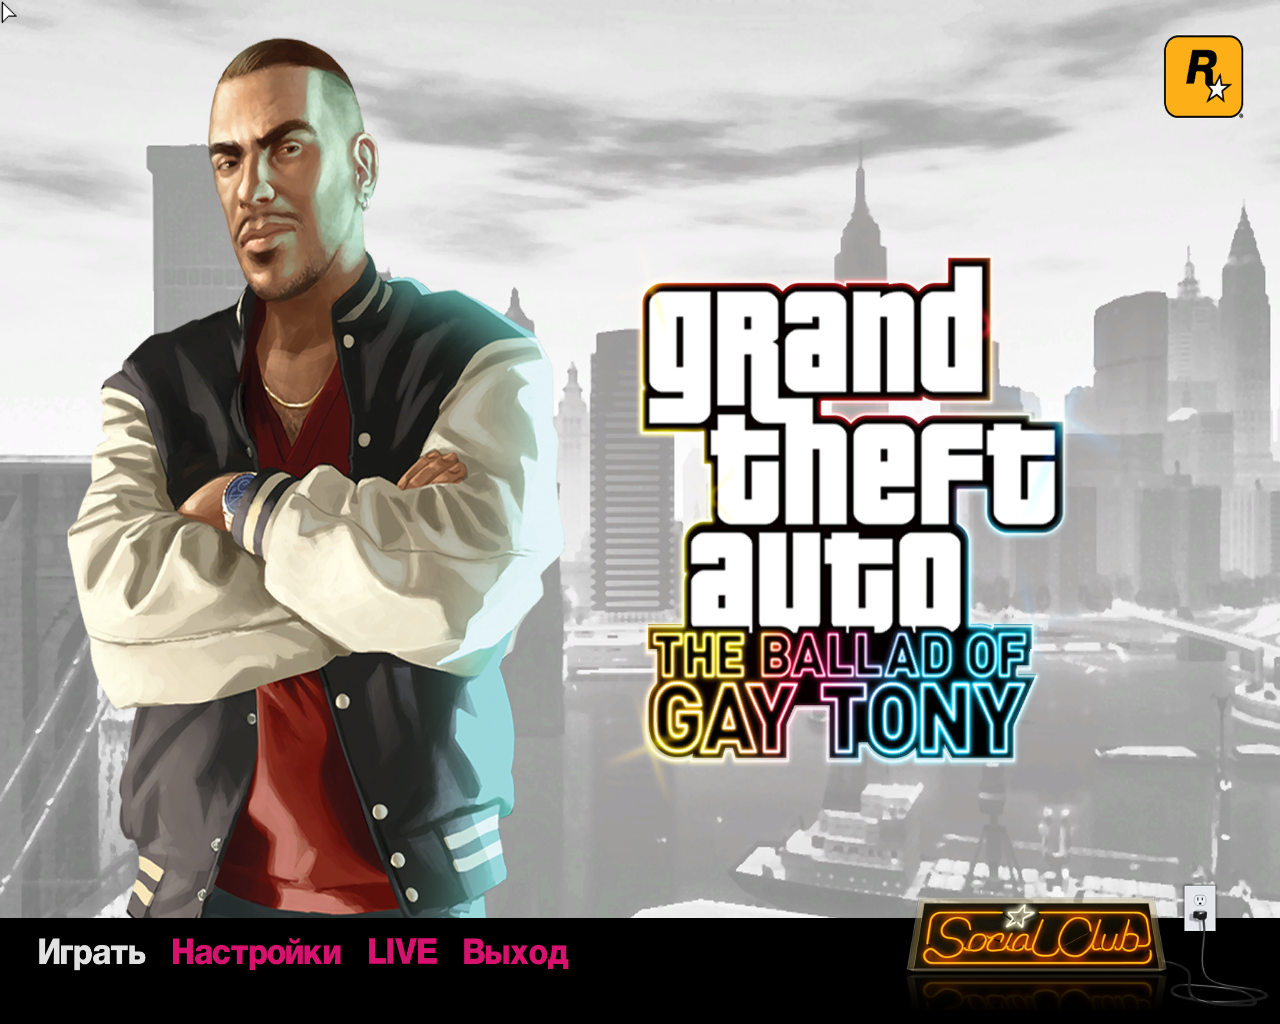 Grand Theft Auto: Episodes from Liberty City Windows The Ballad of Gay Tony - main menu (Russian version)